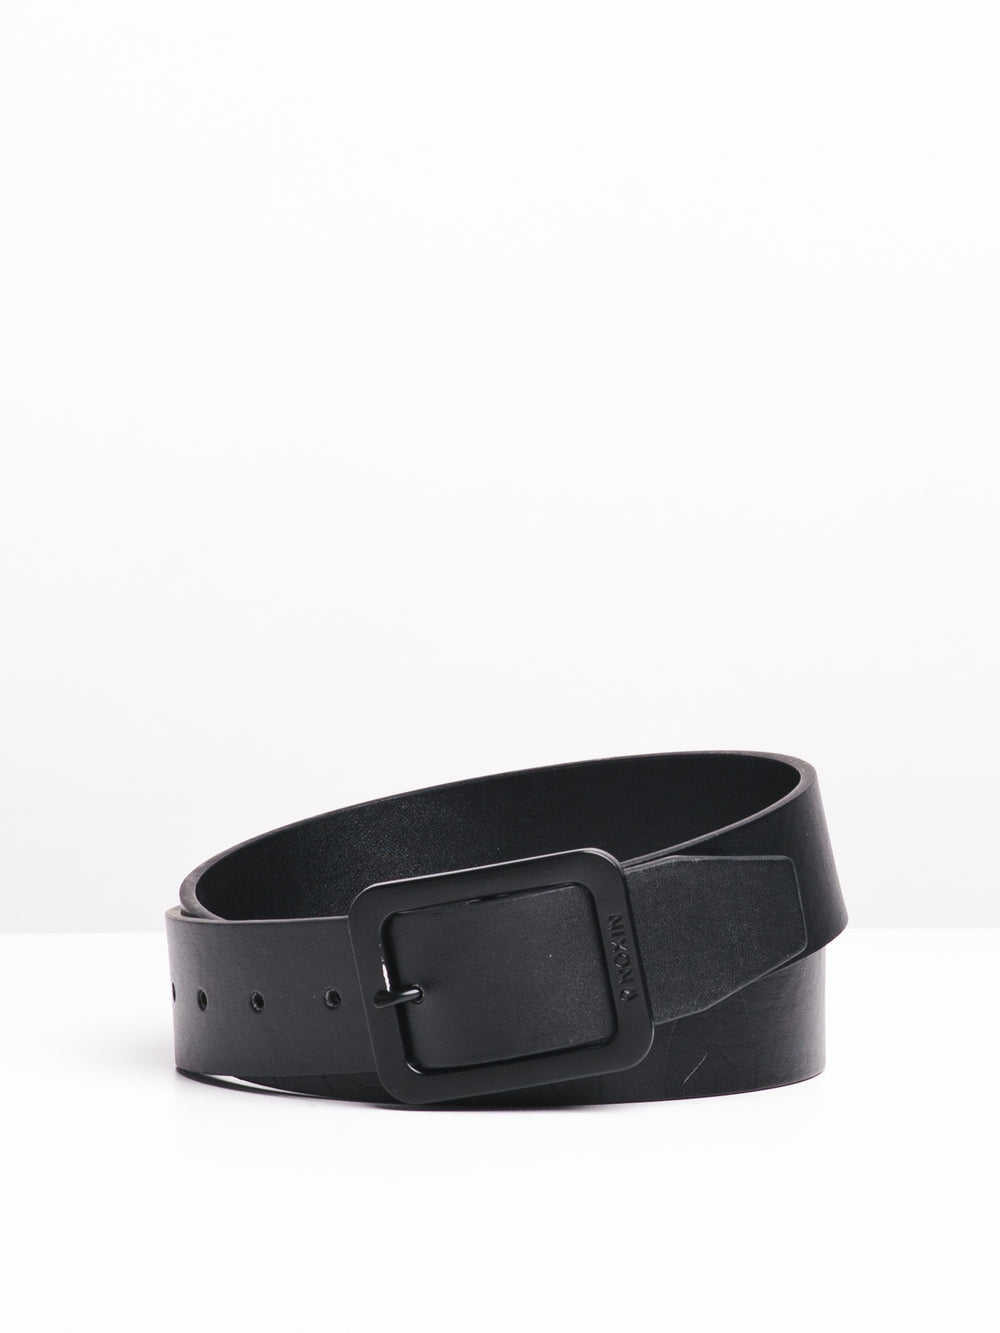 DE FACTO BELT - BLACK